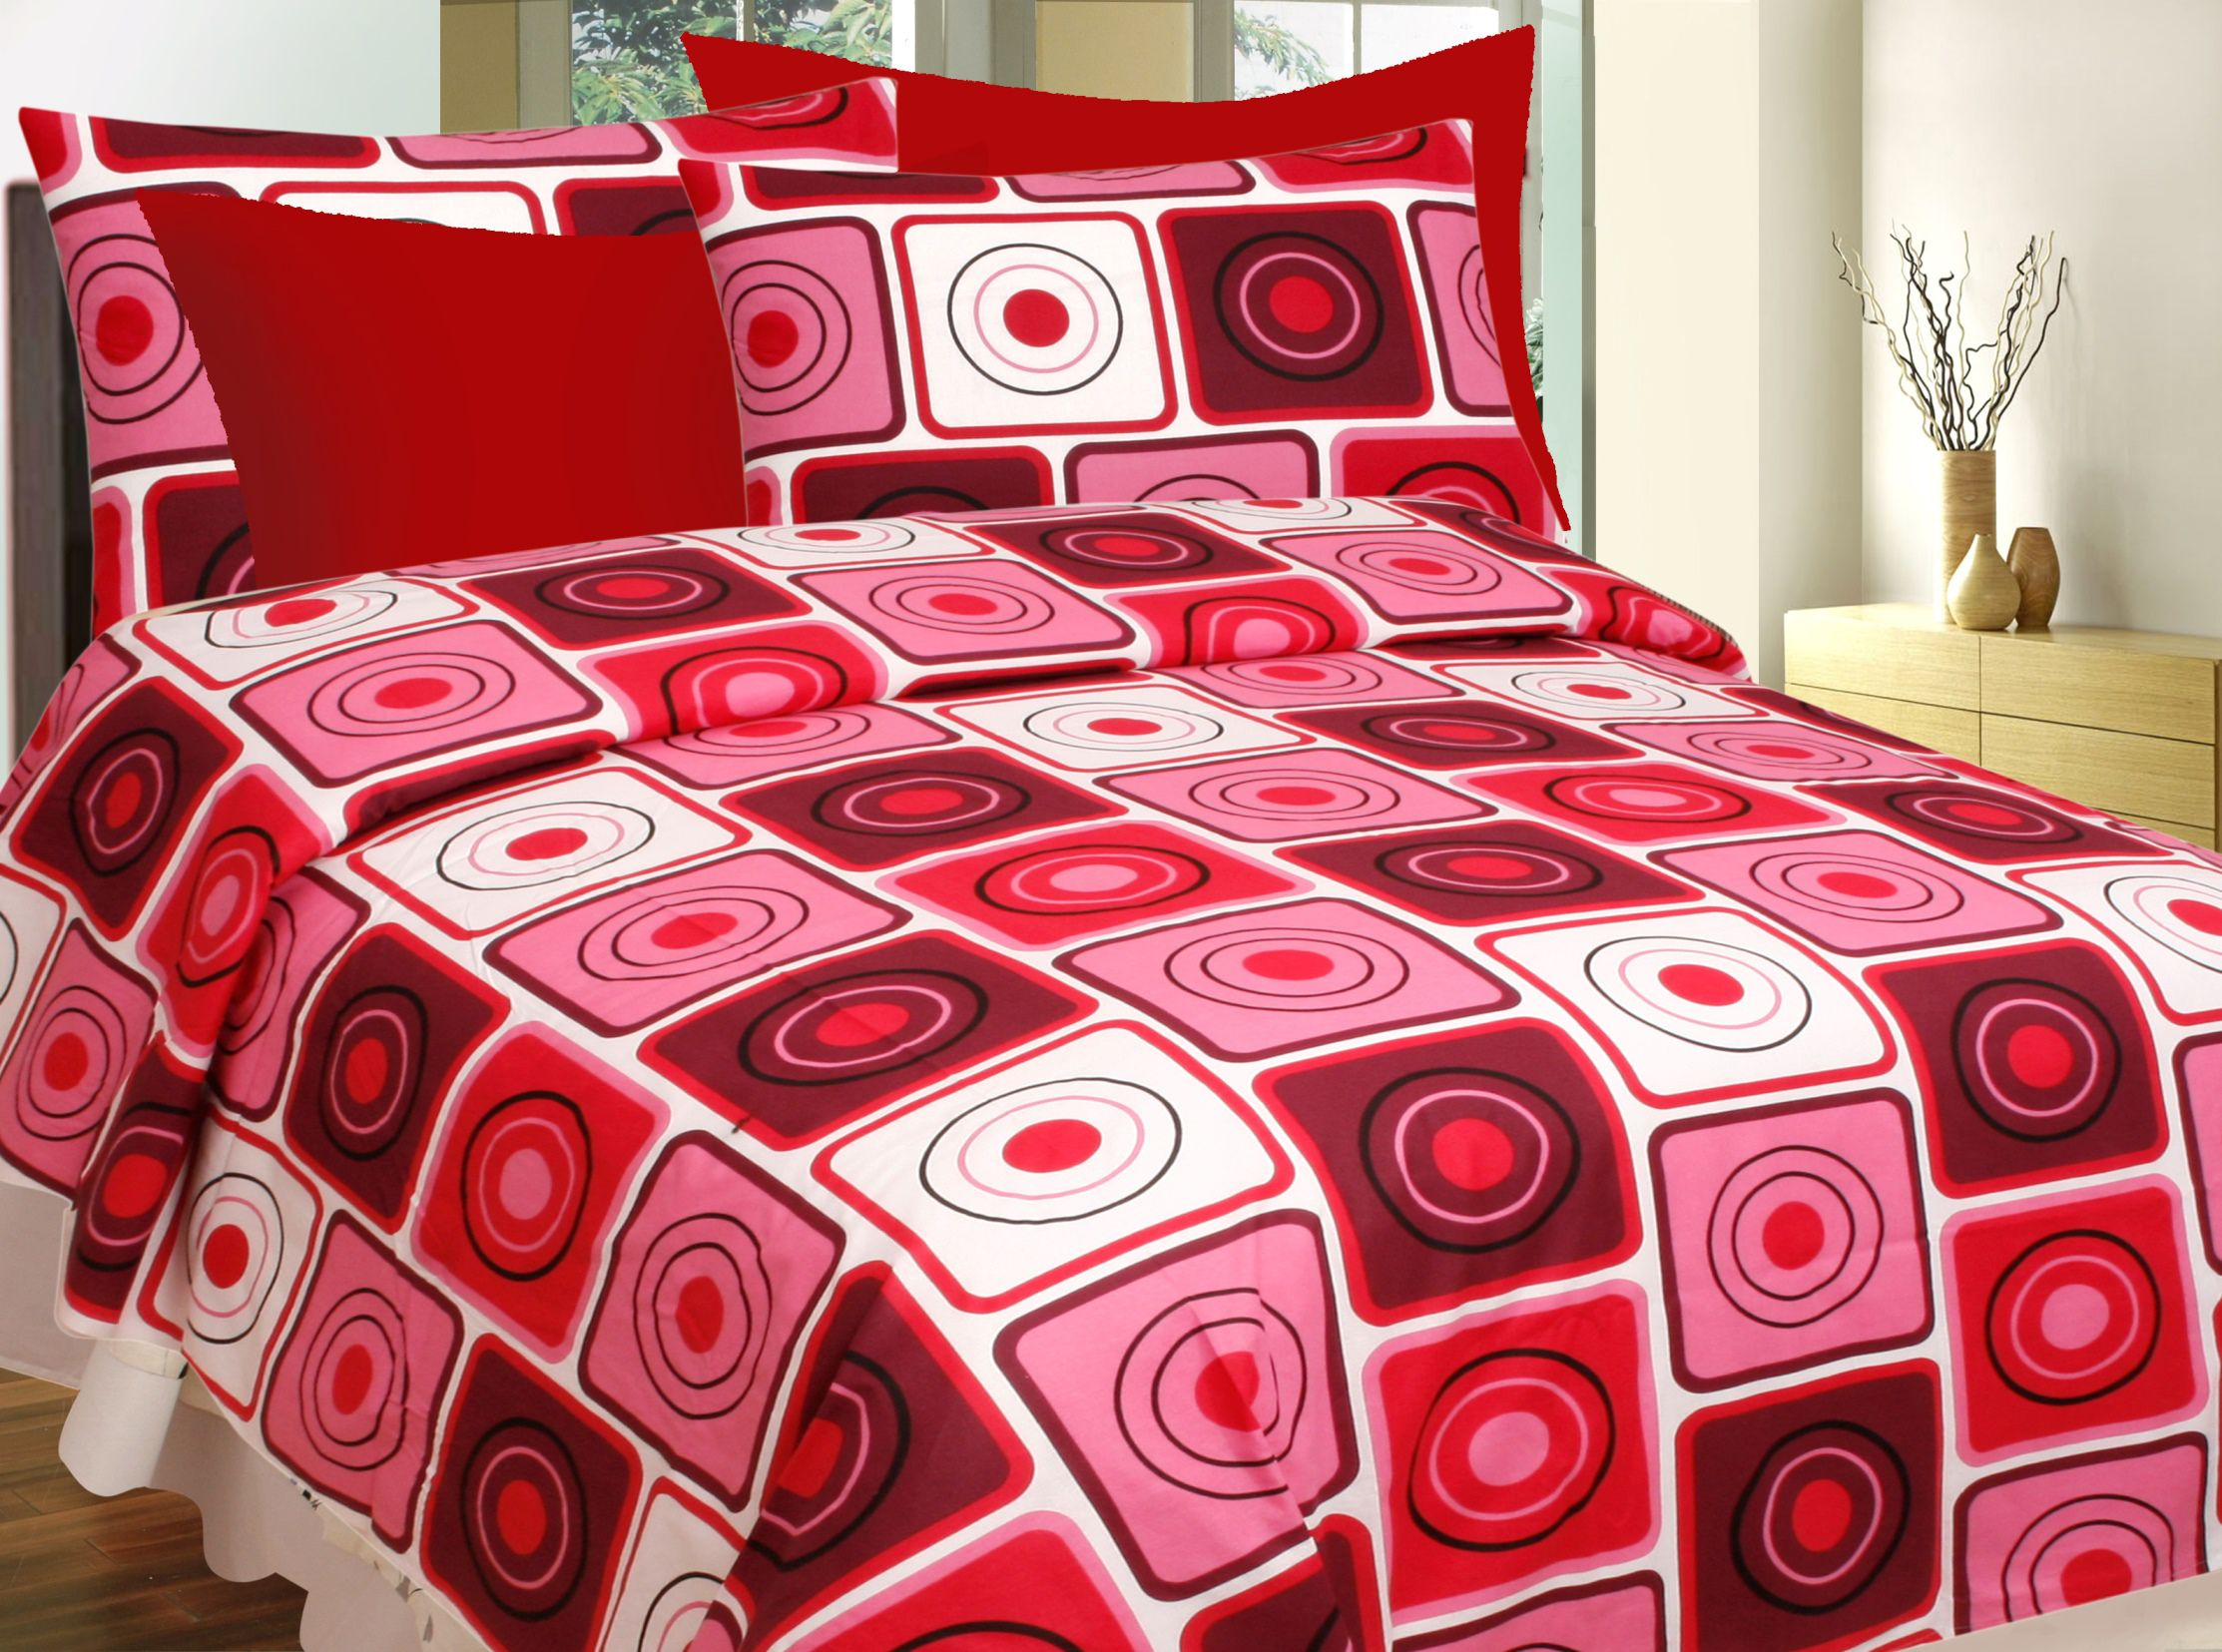 Divine Casa Pack of 4 Cotton Double Bedsheets with 8